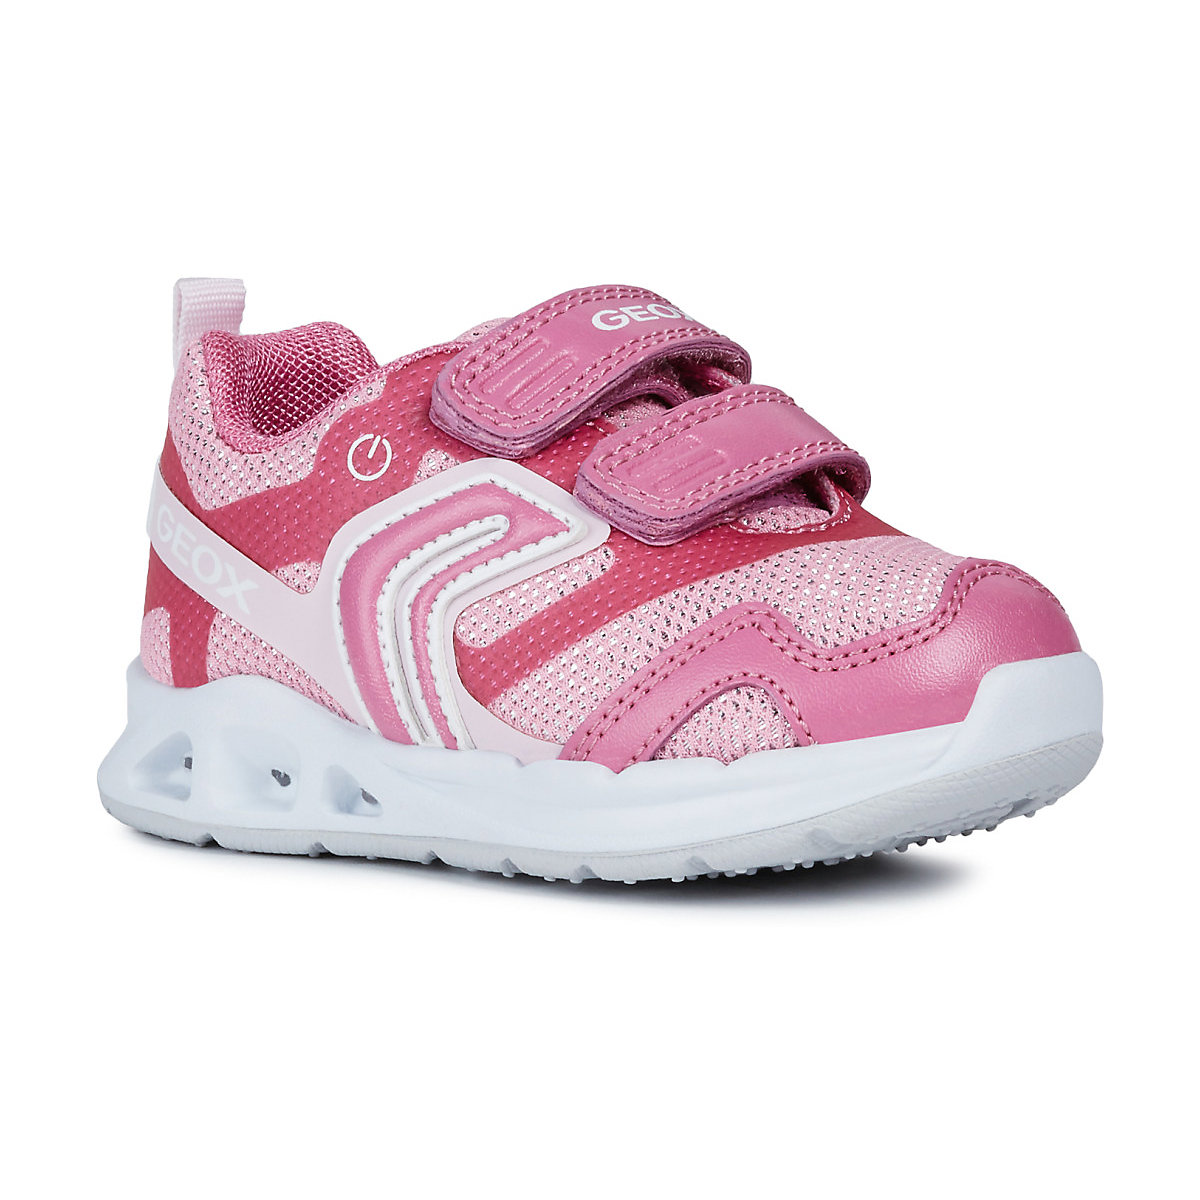 GEOX Kids' Sneakers 10614368 sport shoes for boys and girls men sport shoes